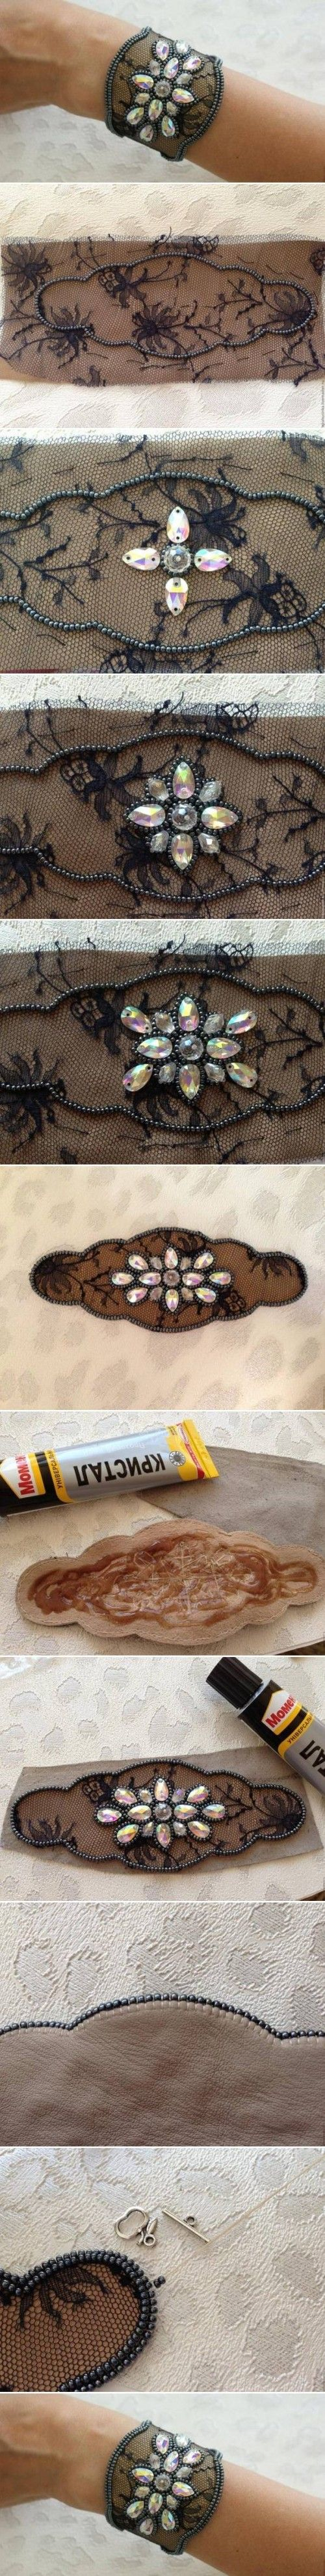 How-to-Make-Lace-and-Beads-Bracelet-step-by-step-DIY-tutorial-instructions-500x3961 (3)